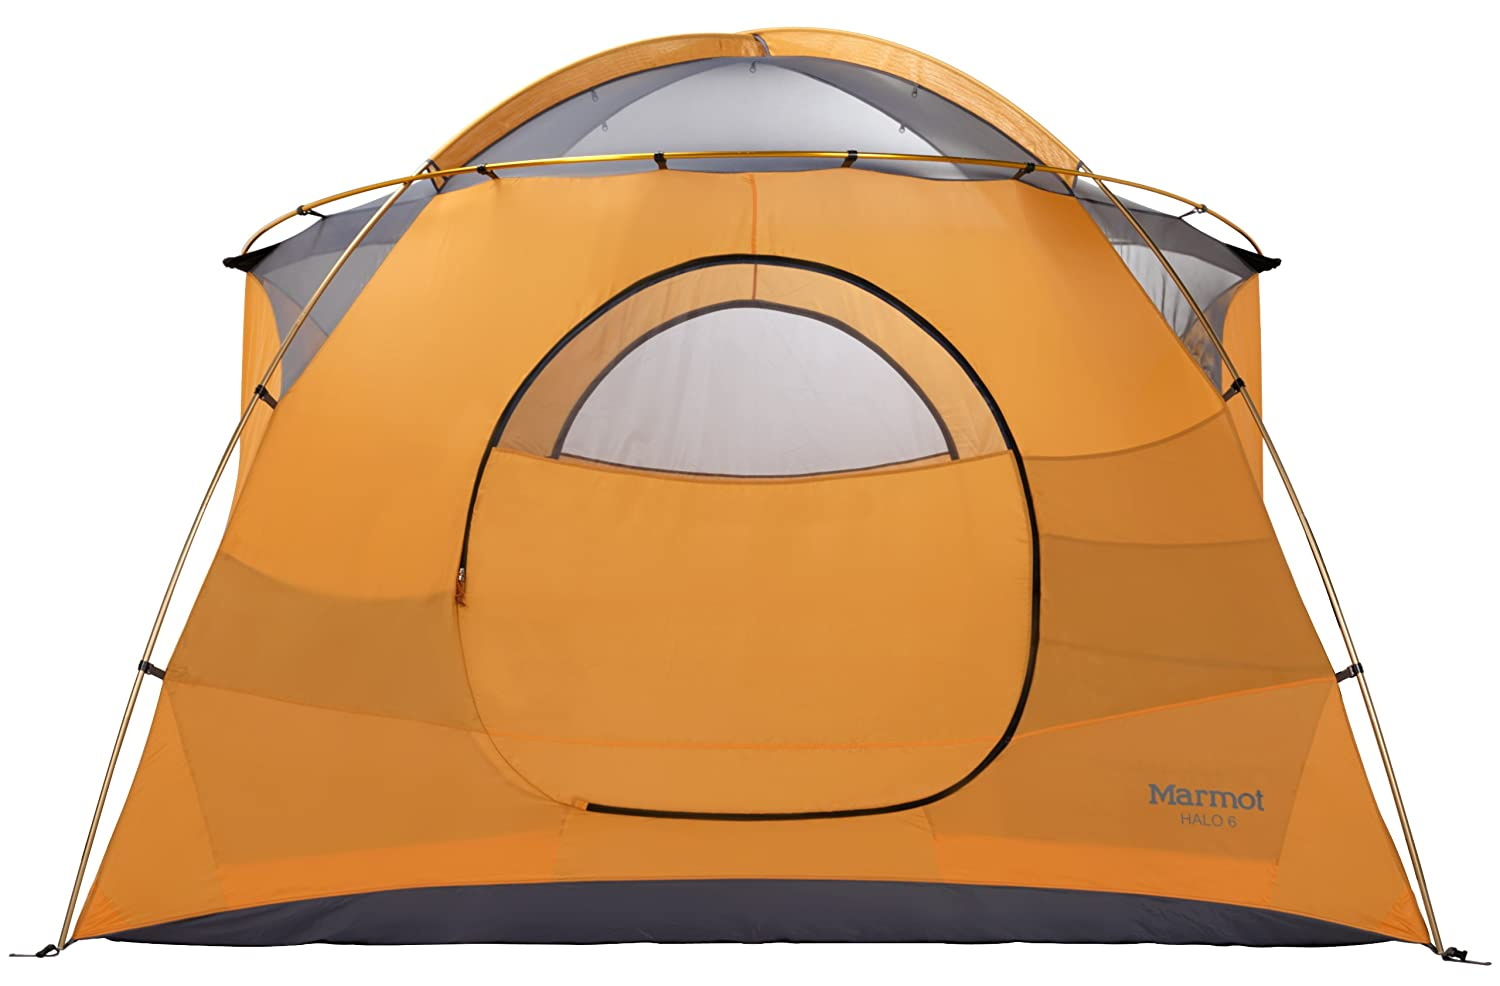 Amazon.com  Marmot Halo 6-Persons Tent Orange One  Sports u0026 Outdoors  sc 1 st  Amazon.com : marmont tent - memphite.com